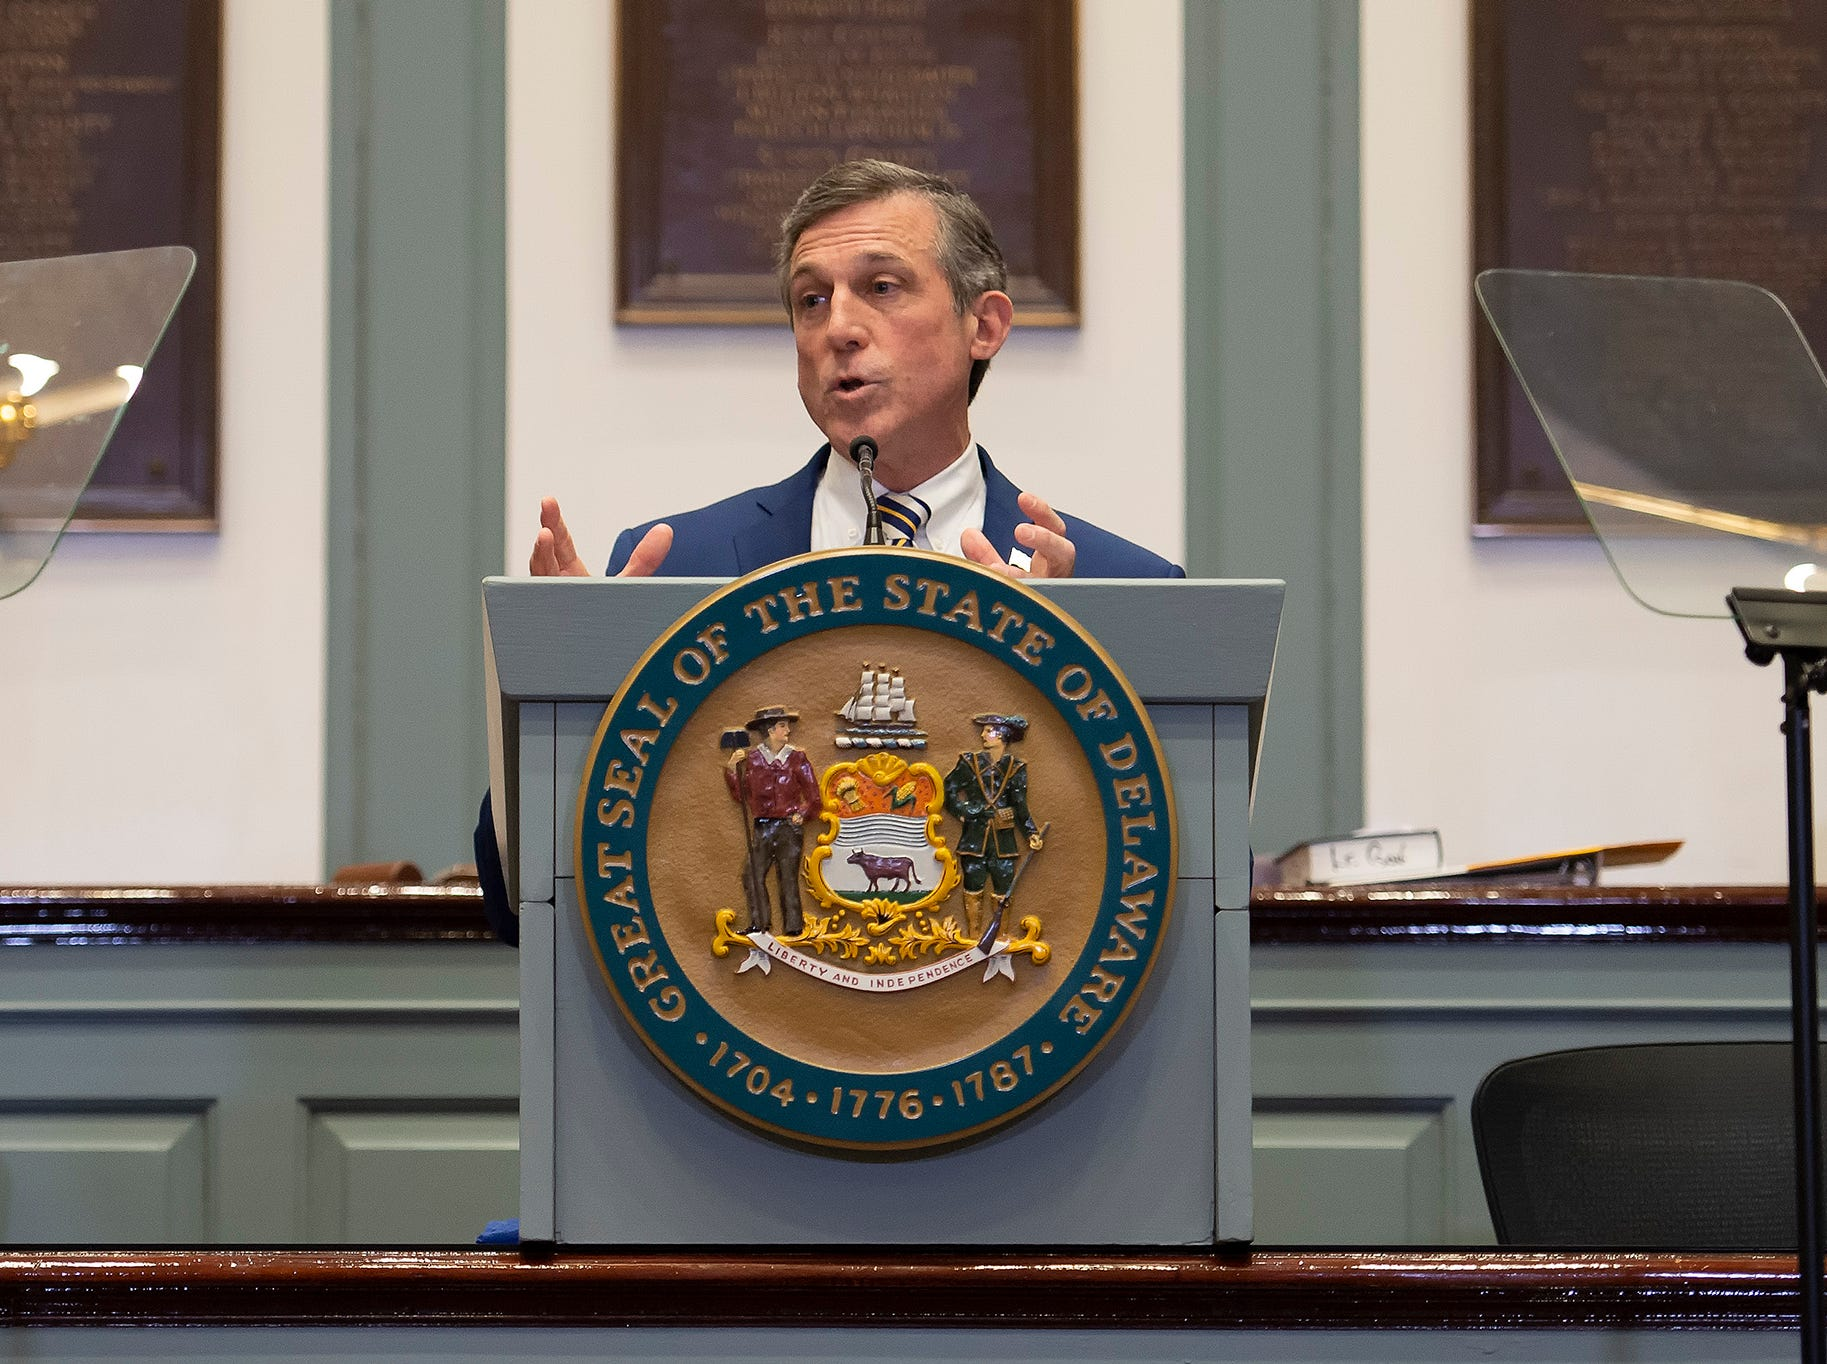 Governor John Carney gives his State of the State Address in the Senate Chambers.